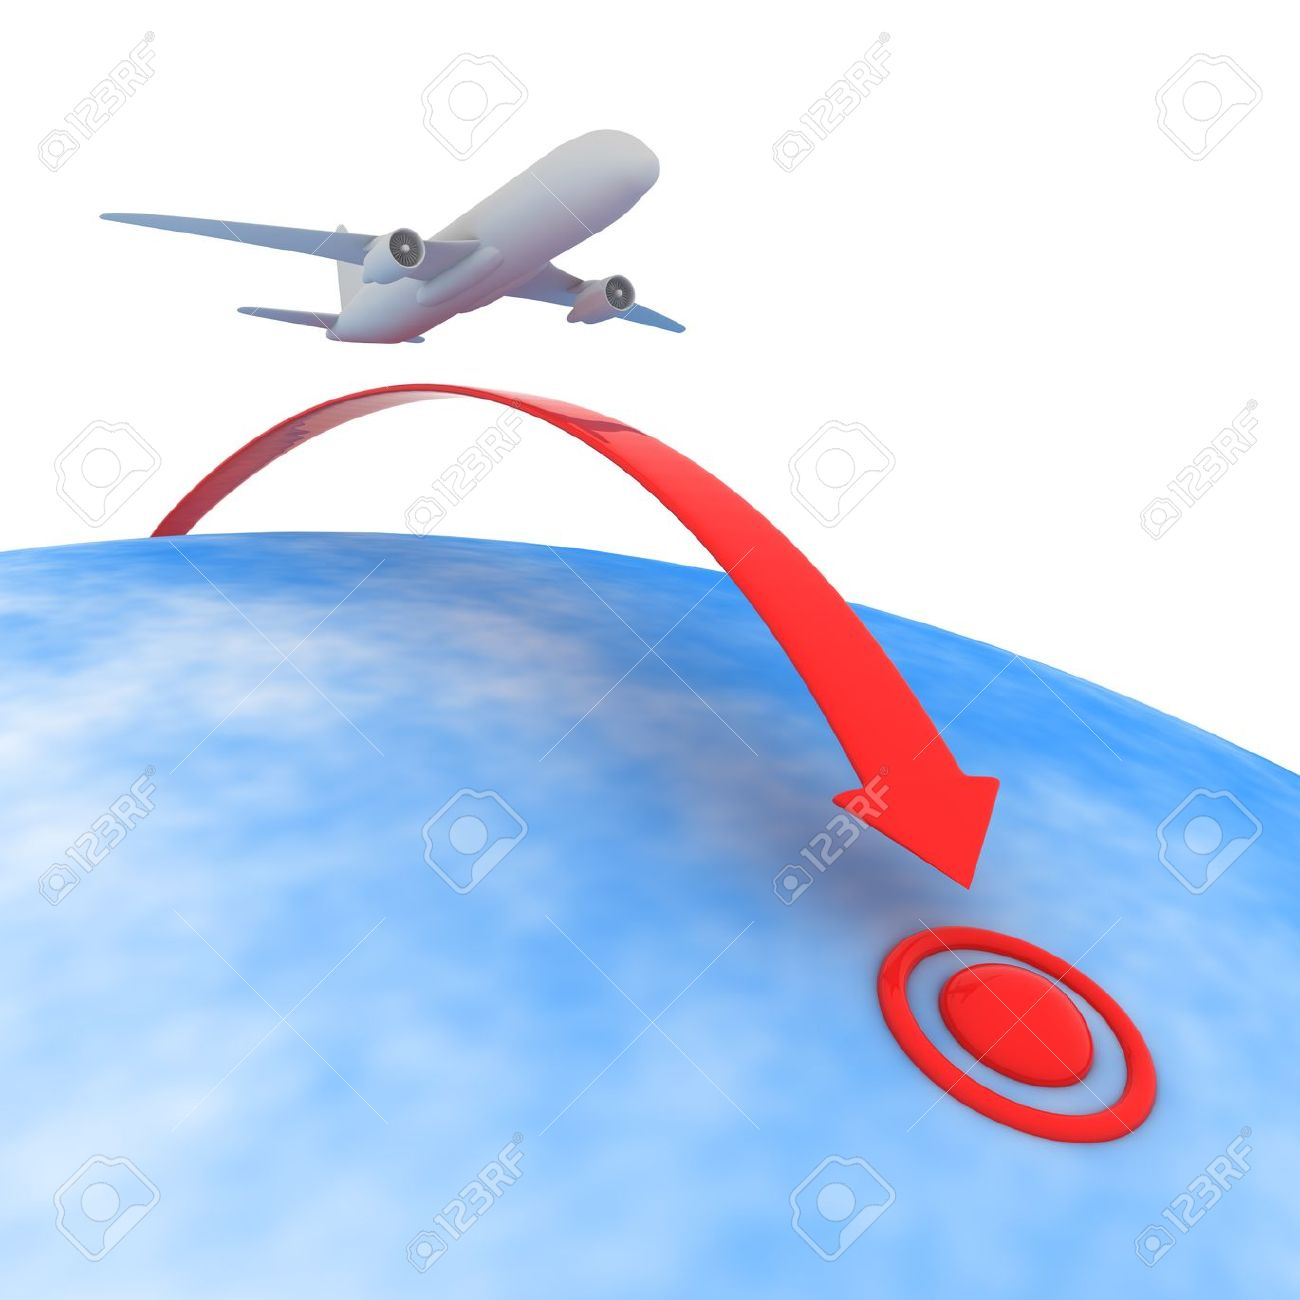 Traveling plane destination clipart jpg freeuse Airplane Flying To The Point Of Destination Stock Photo, Picture ... jpg freeuse